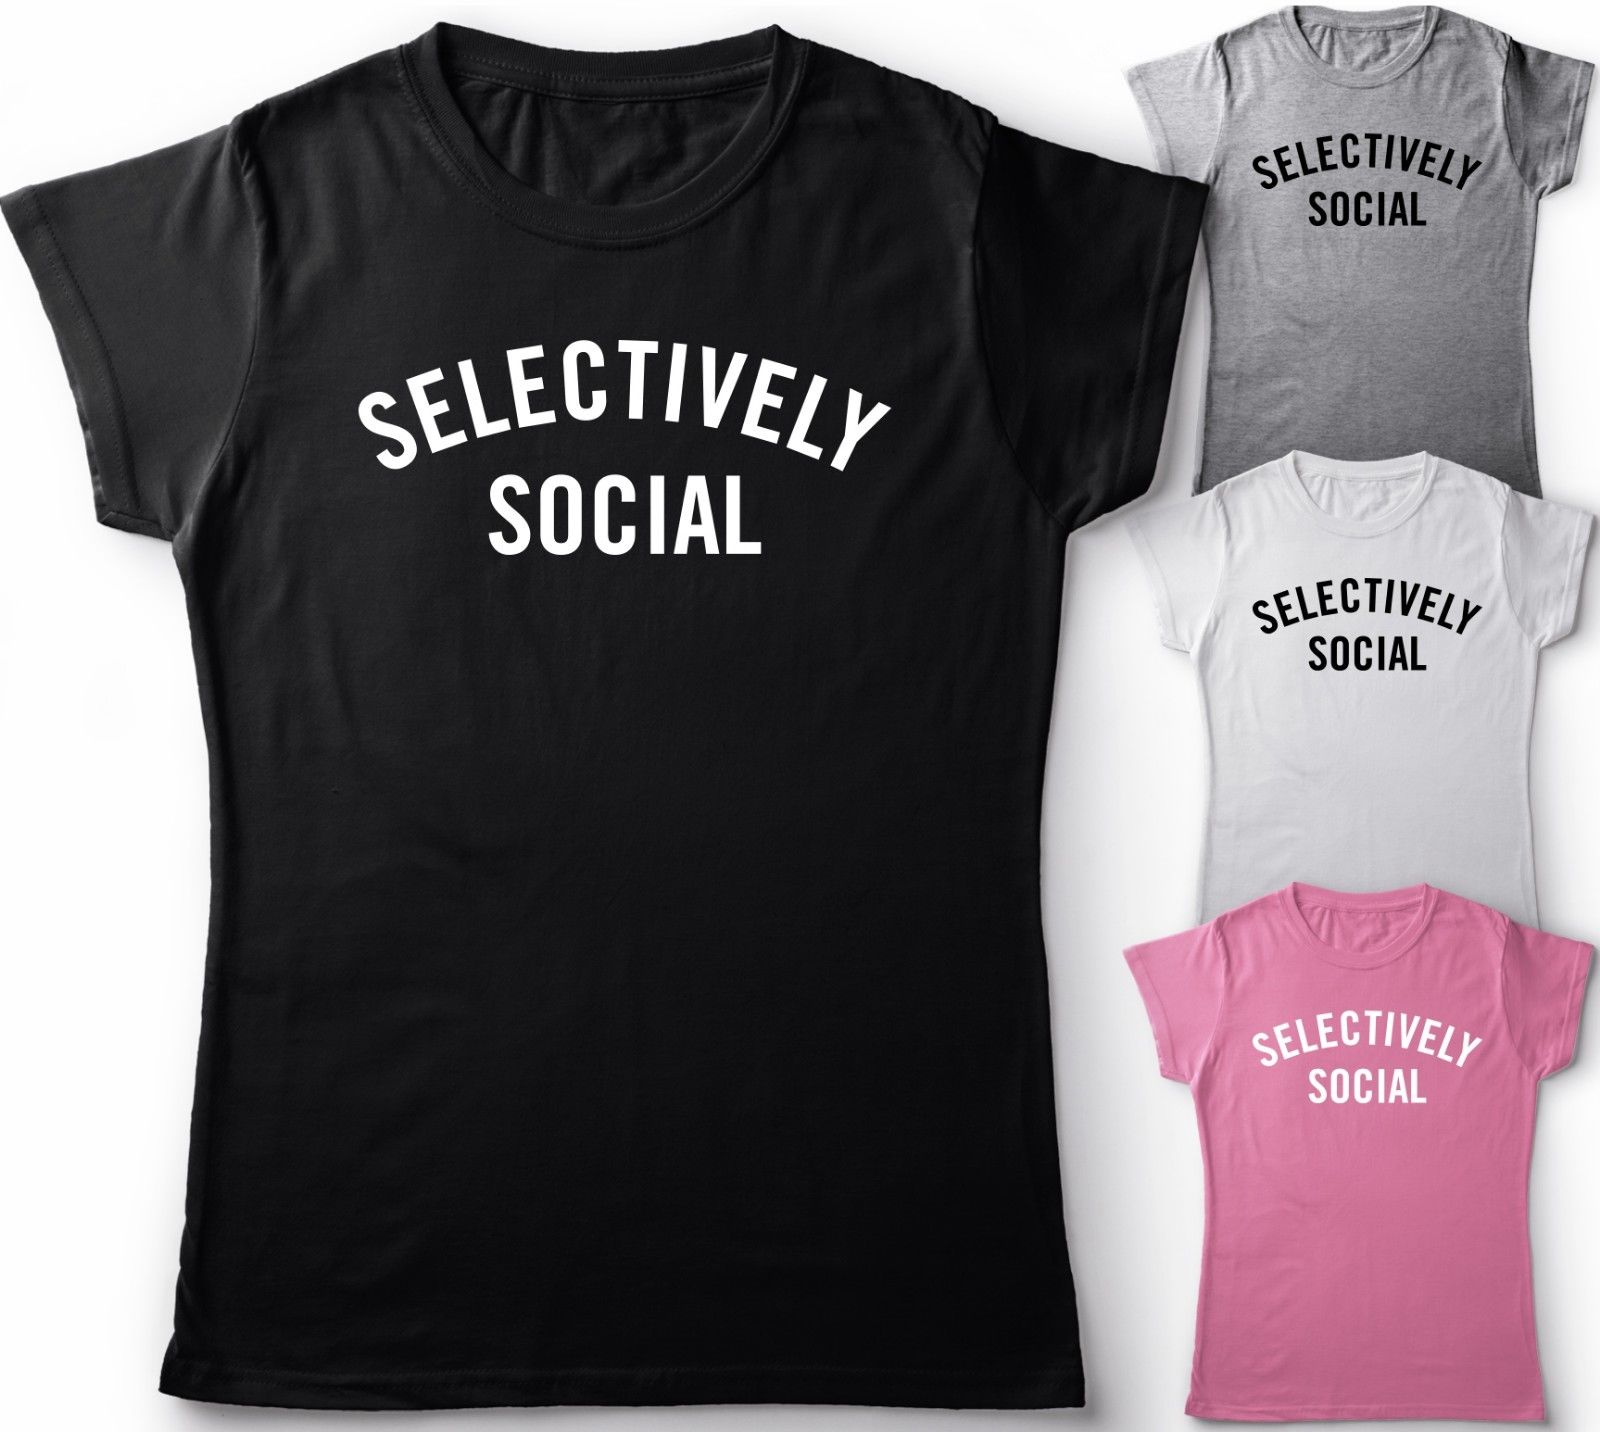 SELECTIVELY SOCIAL FUNNY SLOGAN UNISEX LADIES T SHIRT GIFT IDEA TOP PARTY TEEMen 39 S T Shirts Summer Style free shipping in T Shirts from Men 39 s Clothing